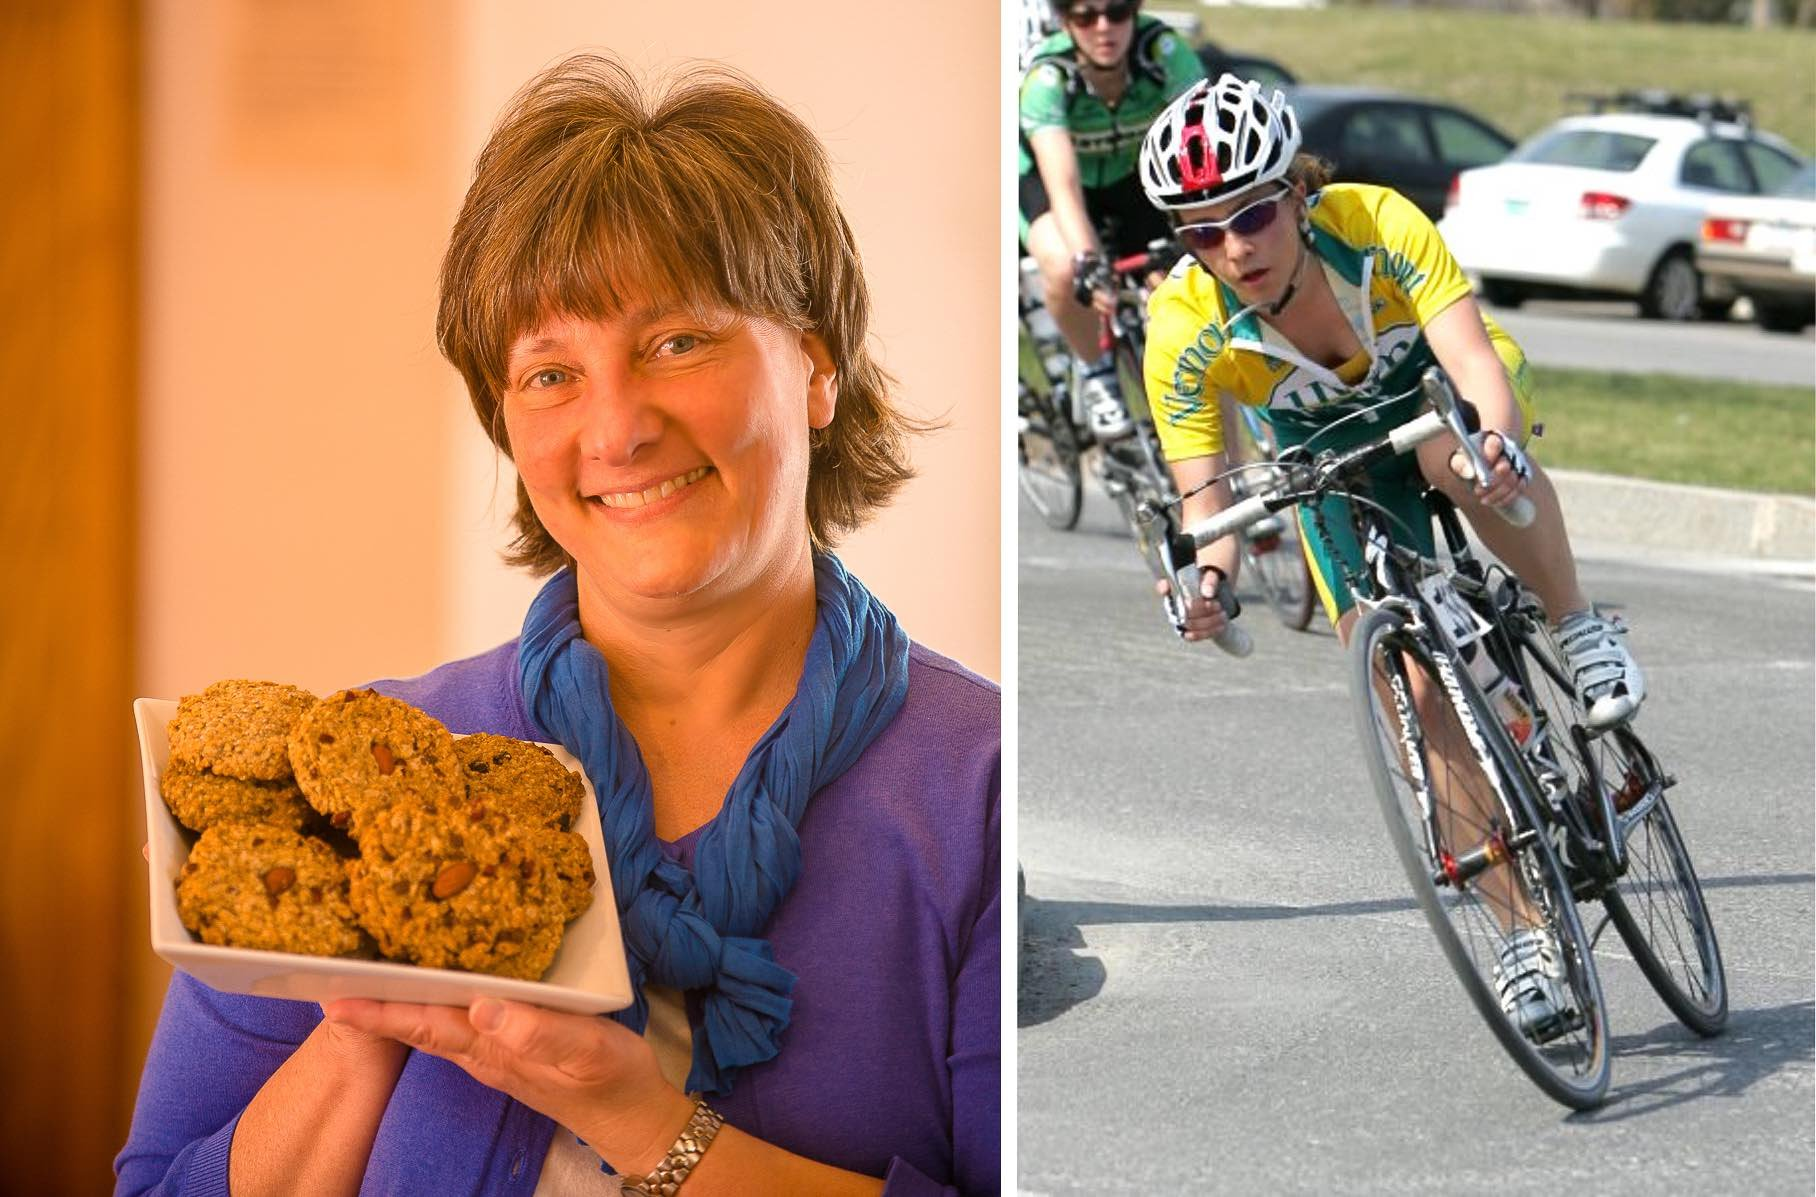 The story of Kakookies - mom bakes healthy energy cookies for daughters cycling teammates